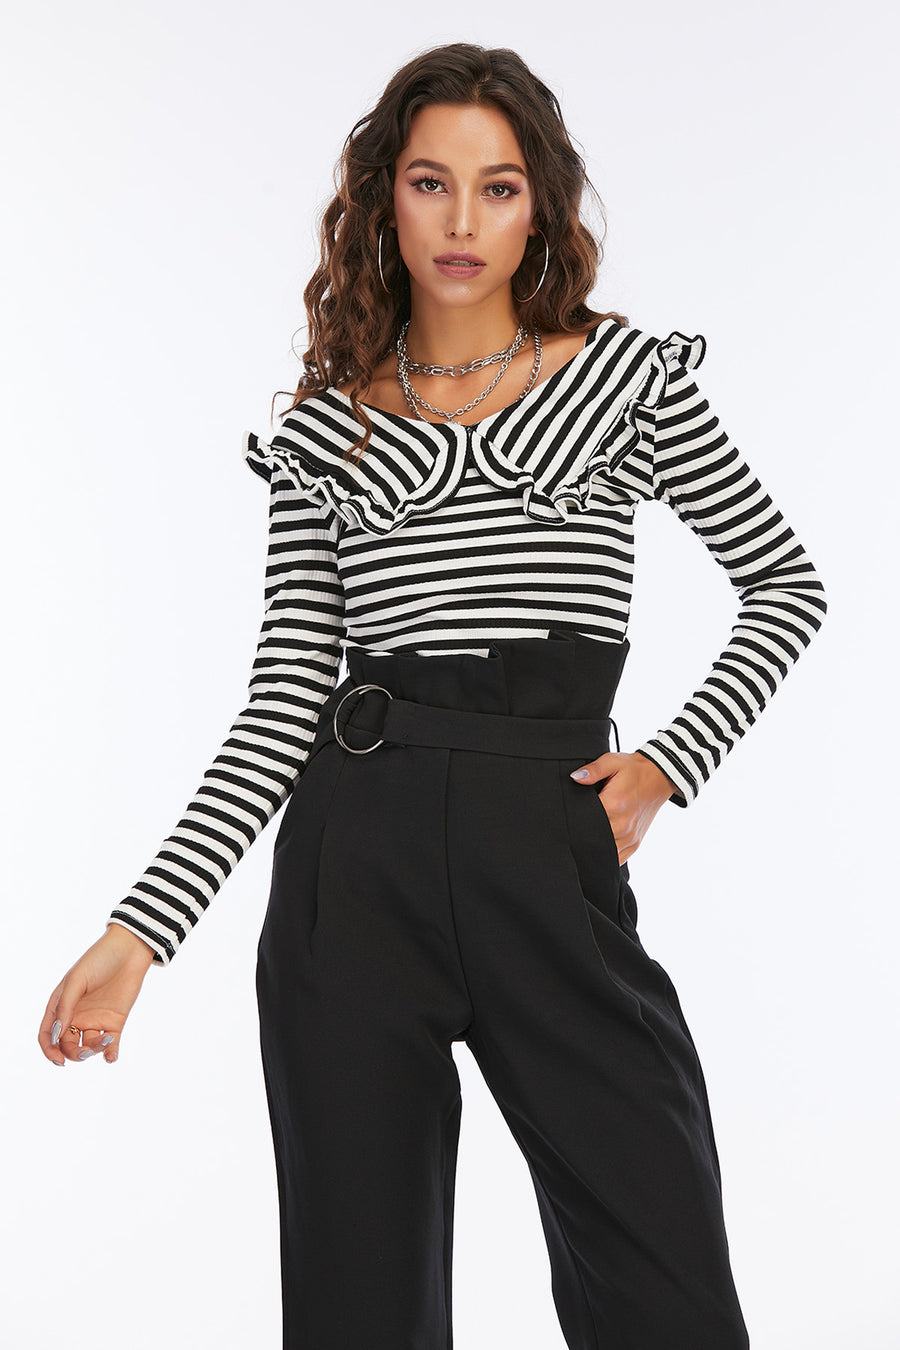 Mantra Pakistan Black & White Striped Top | Western Wear